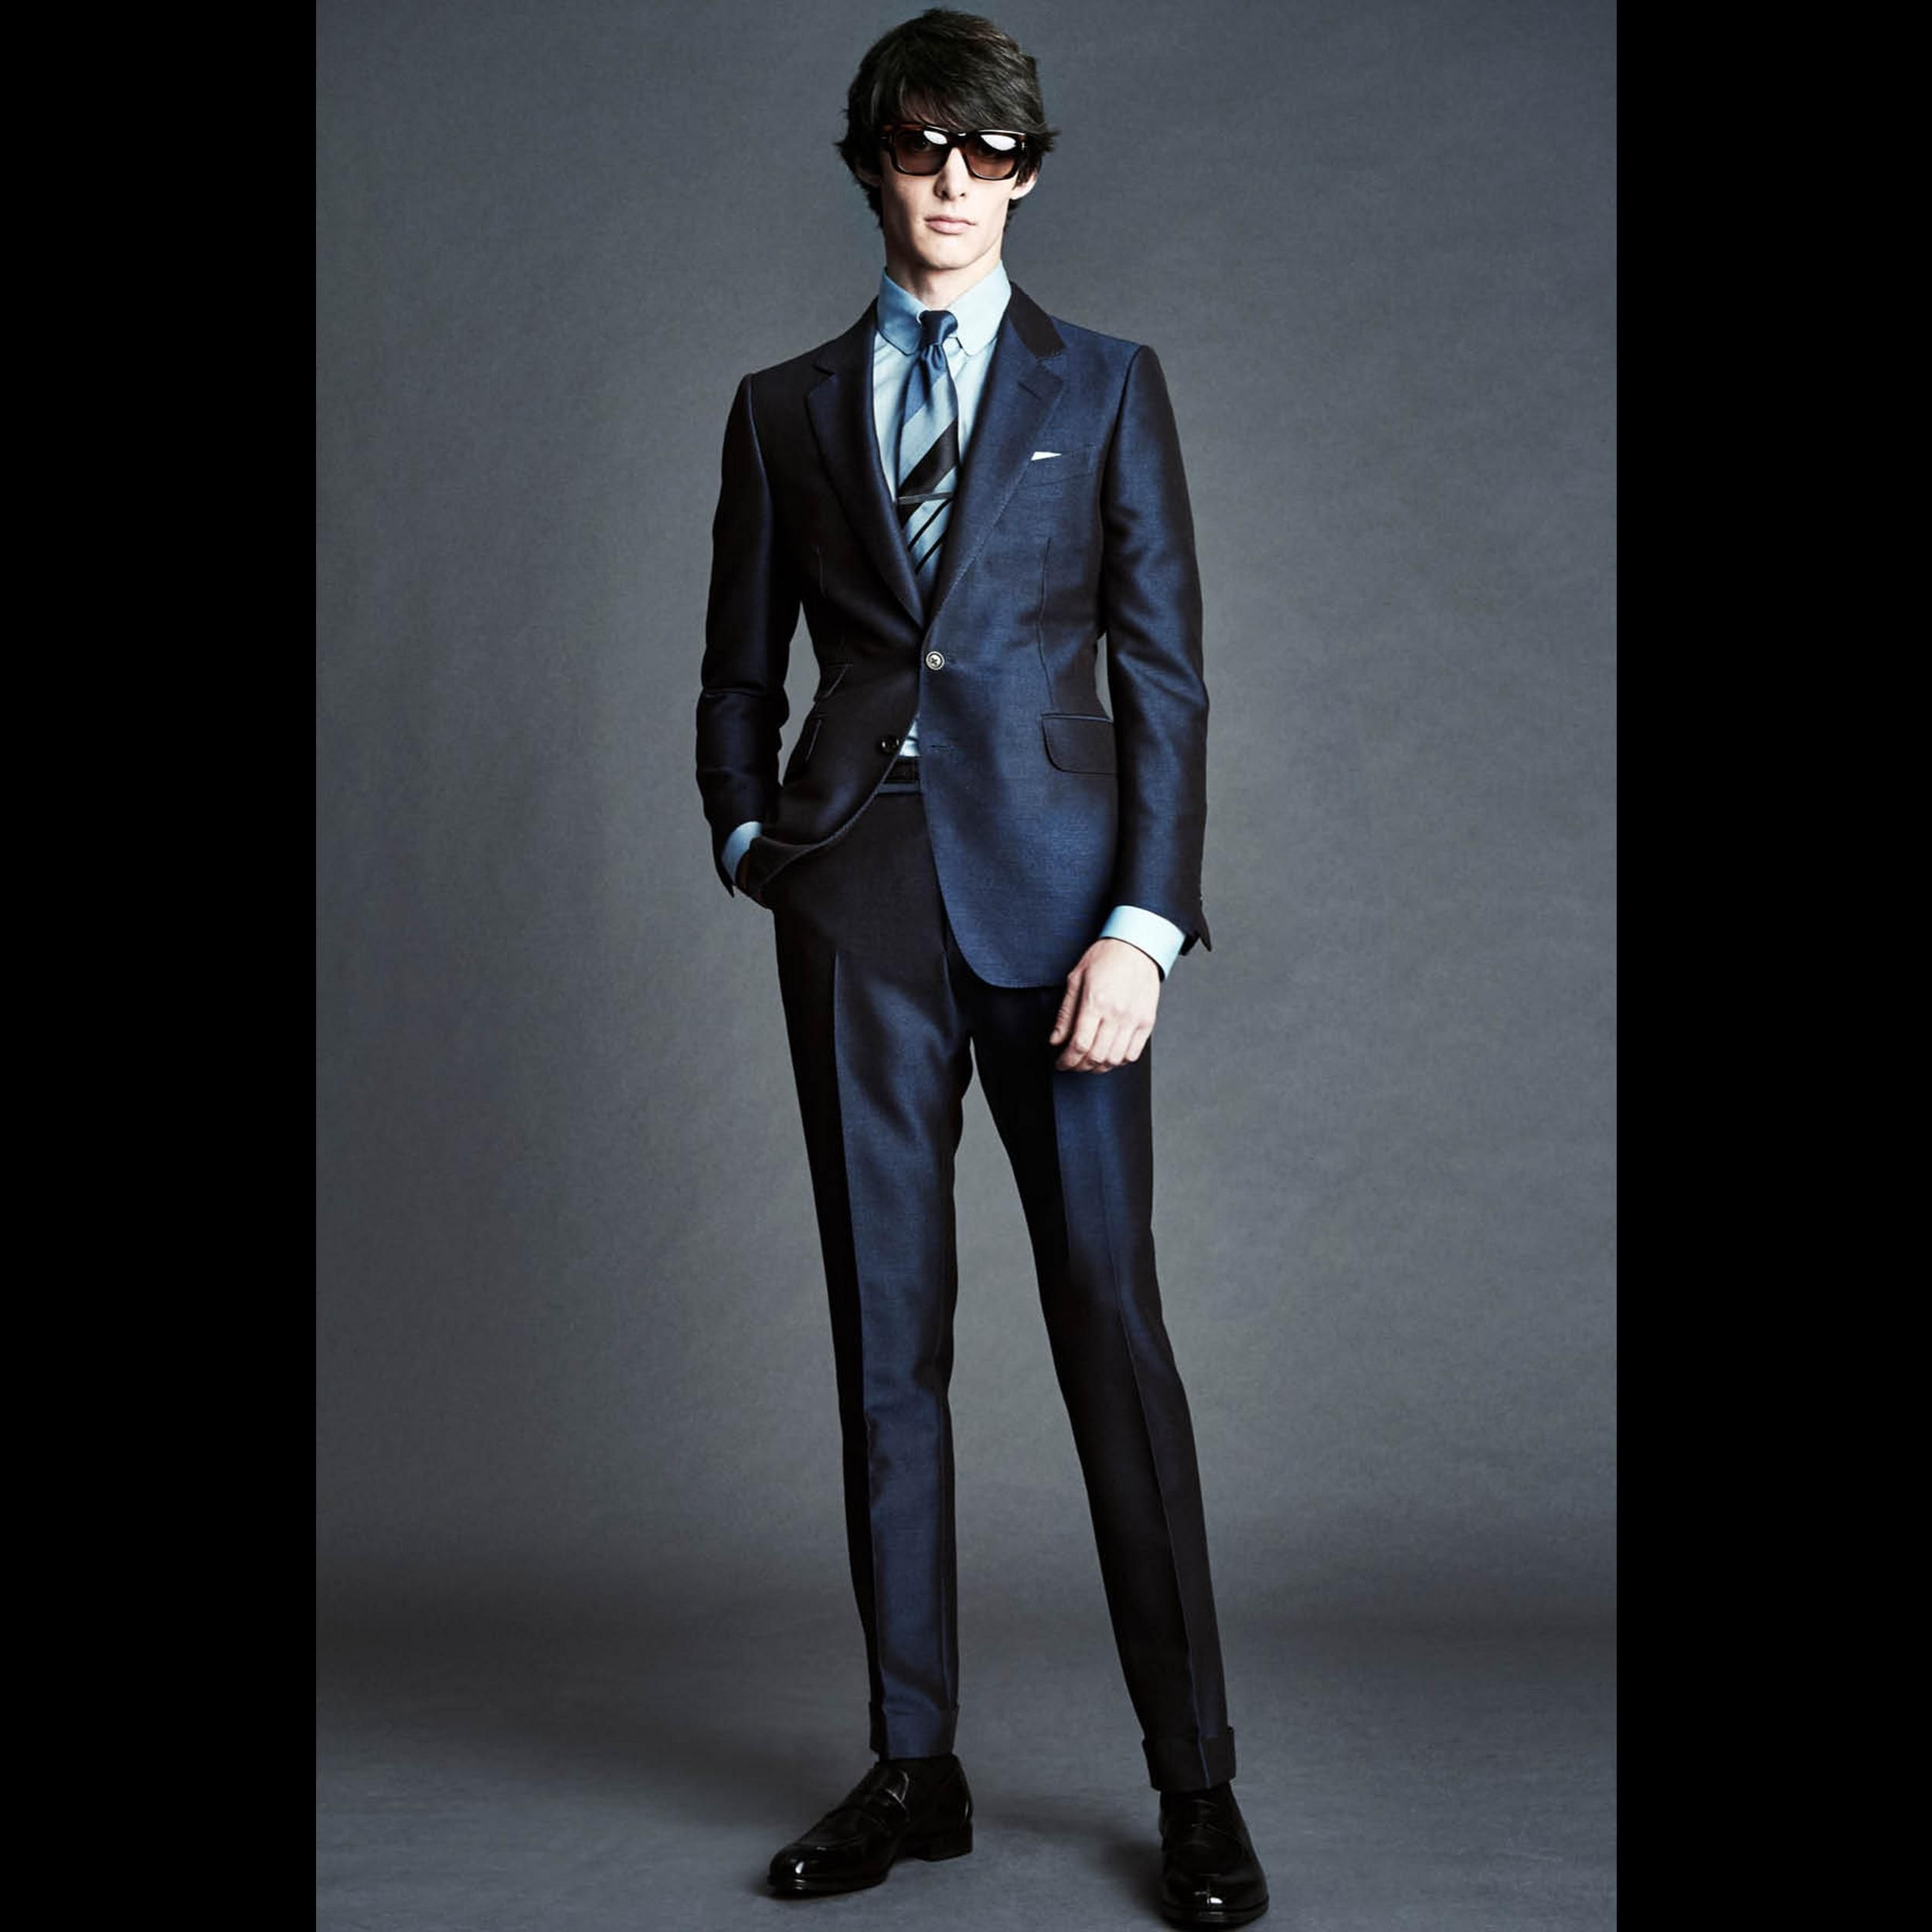 Mens Ss16 Look 8 Teal Cangiante Tonic Buckley Half Lined Notched